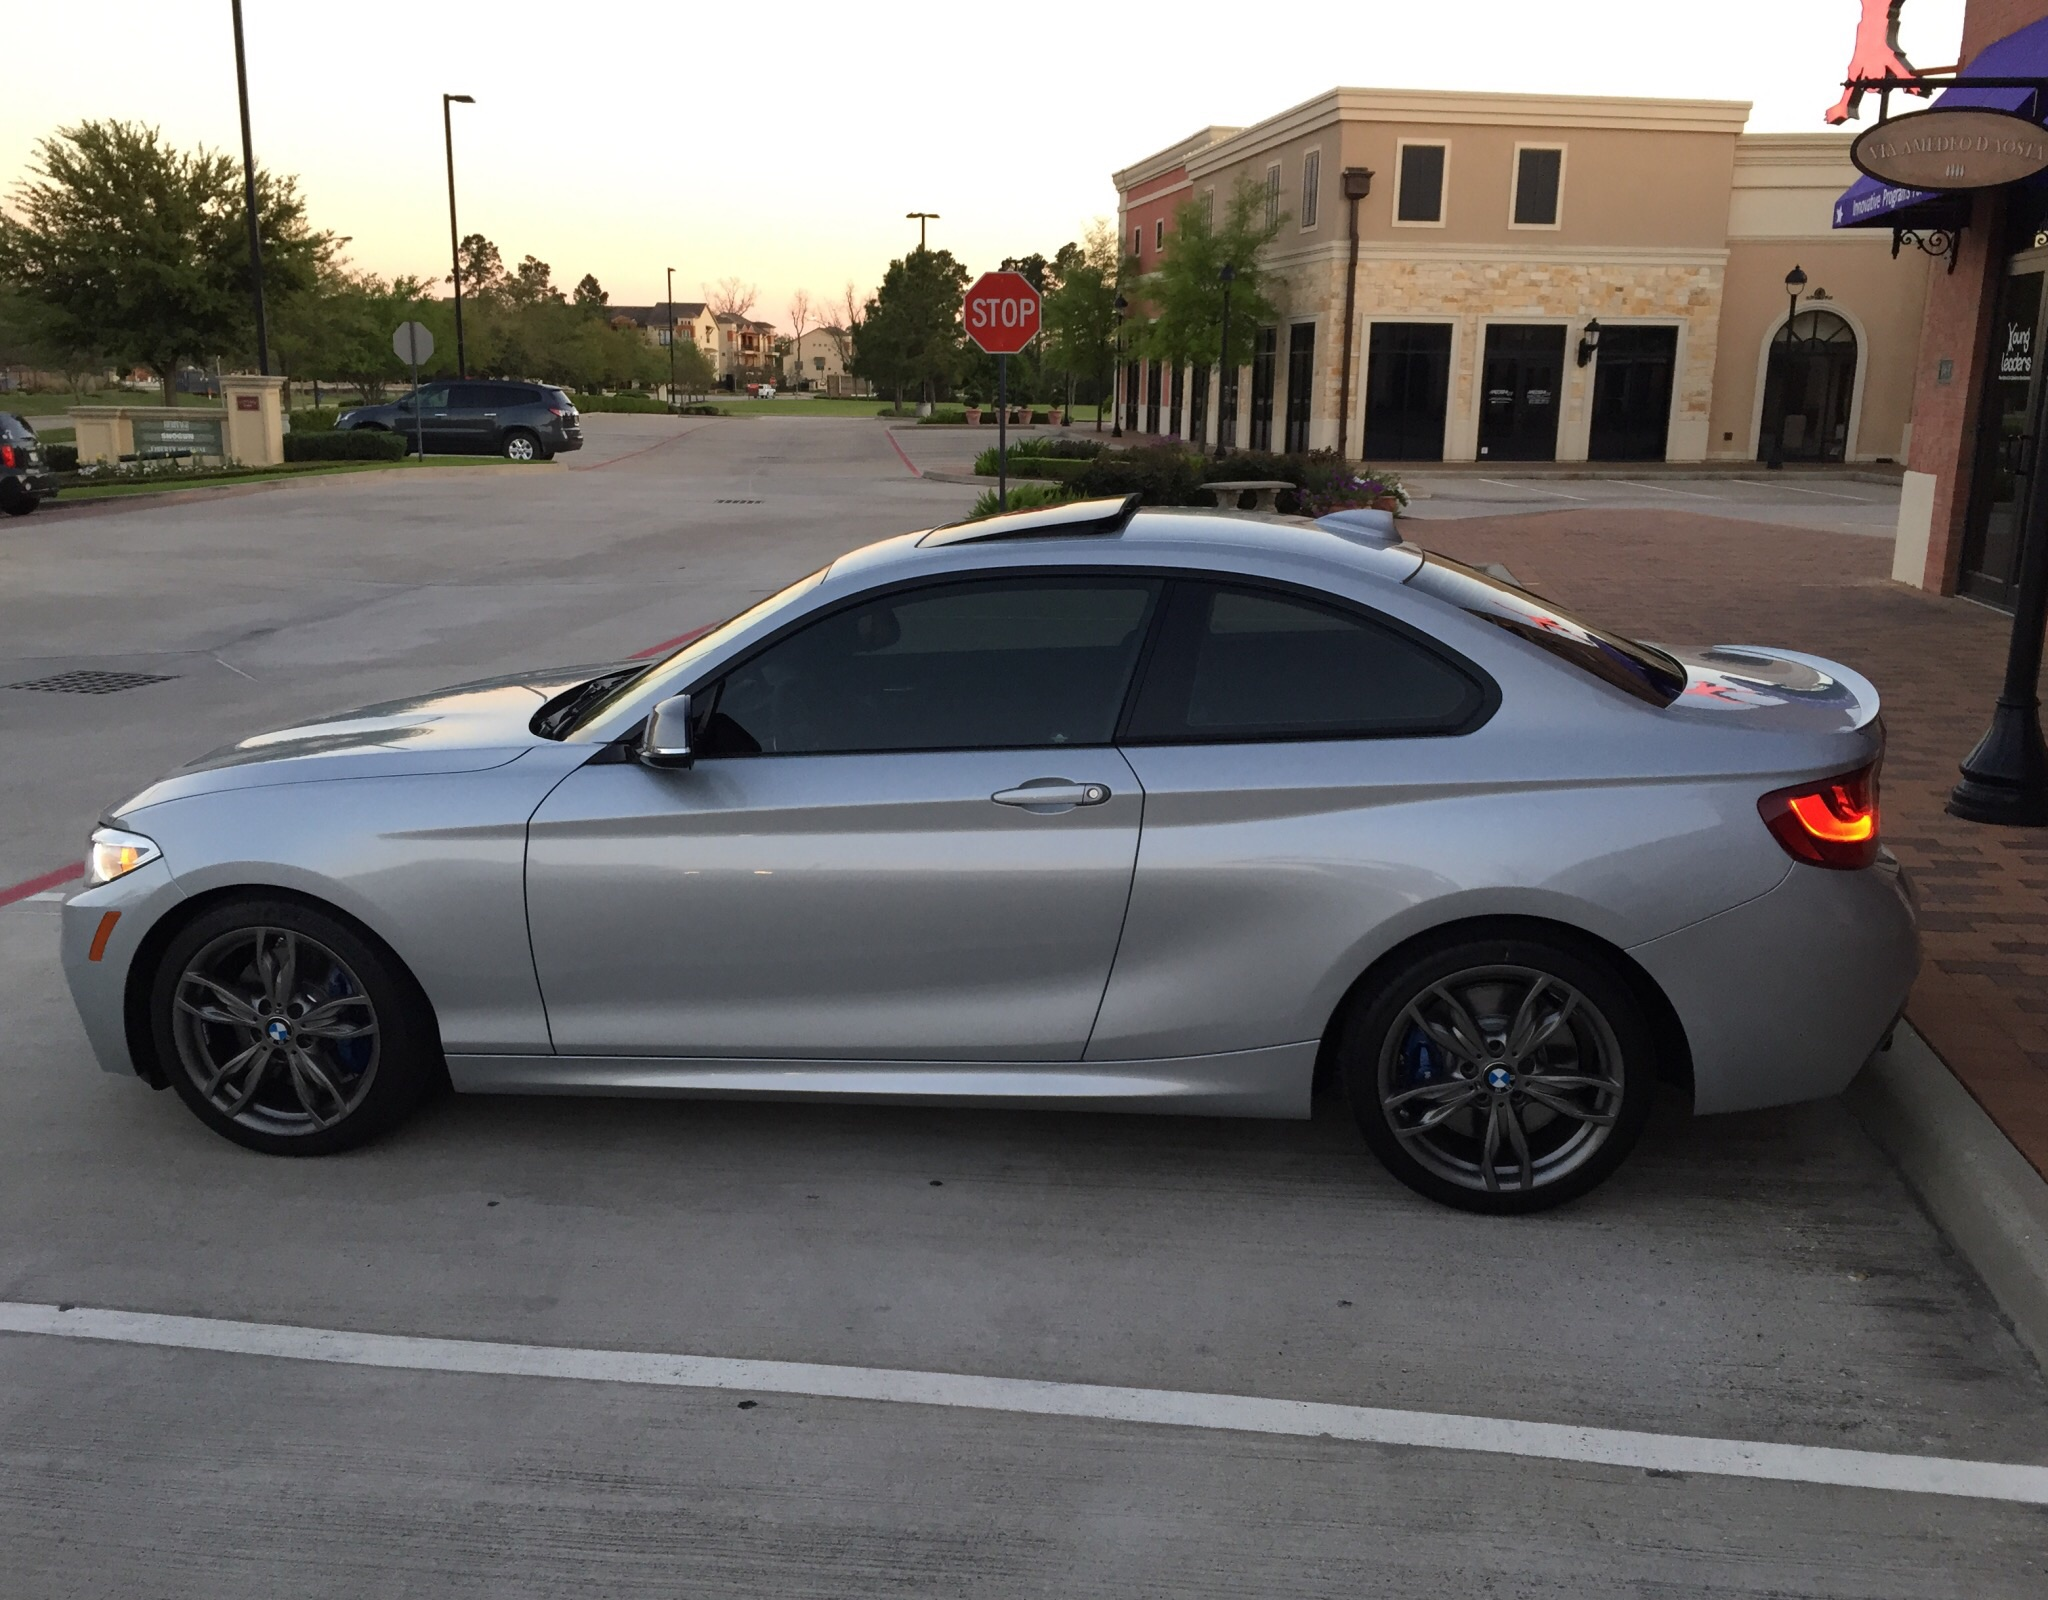 Bmw Of Houston >> 2Addicts | BMW 2-Series forum - View Single Post - Official GLACIER SILVER 2 Series Coupe ...